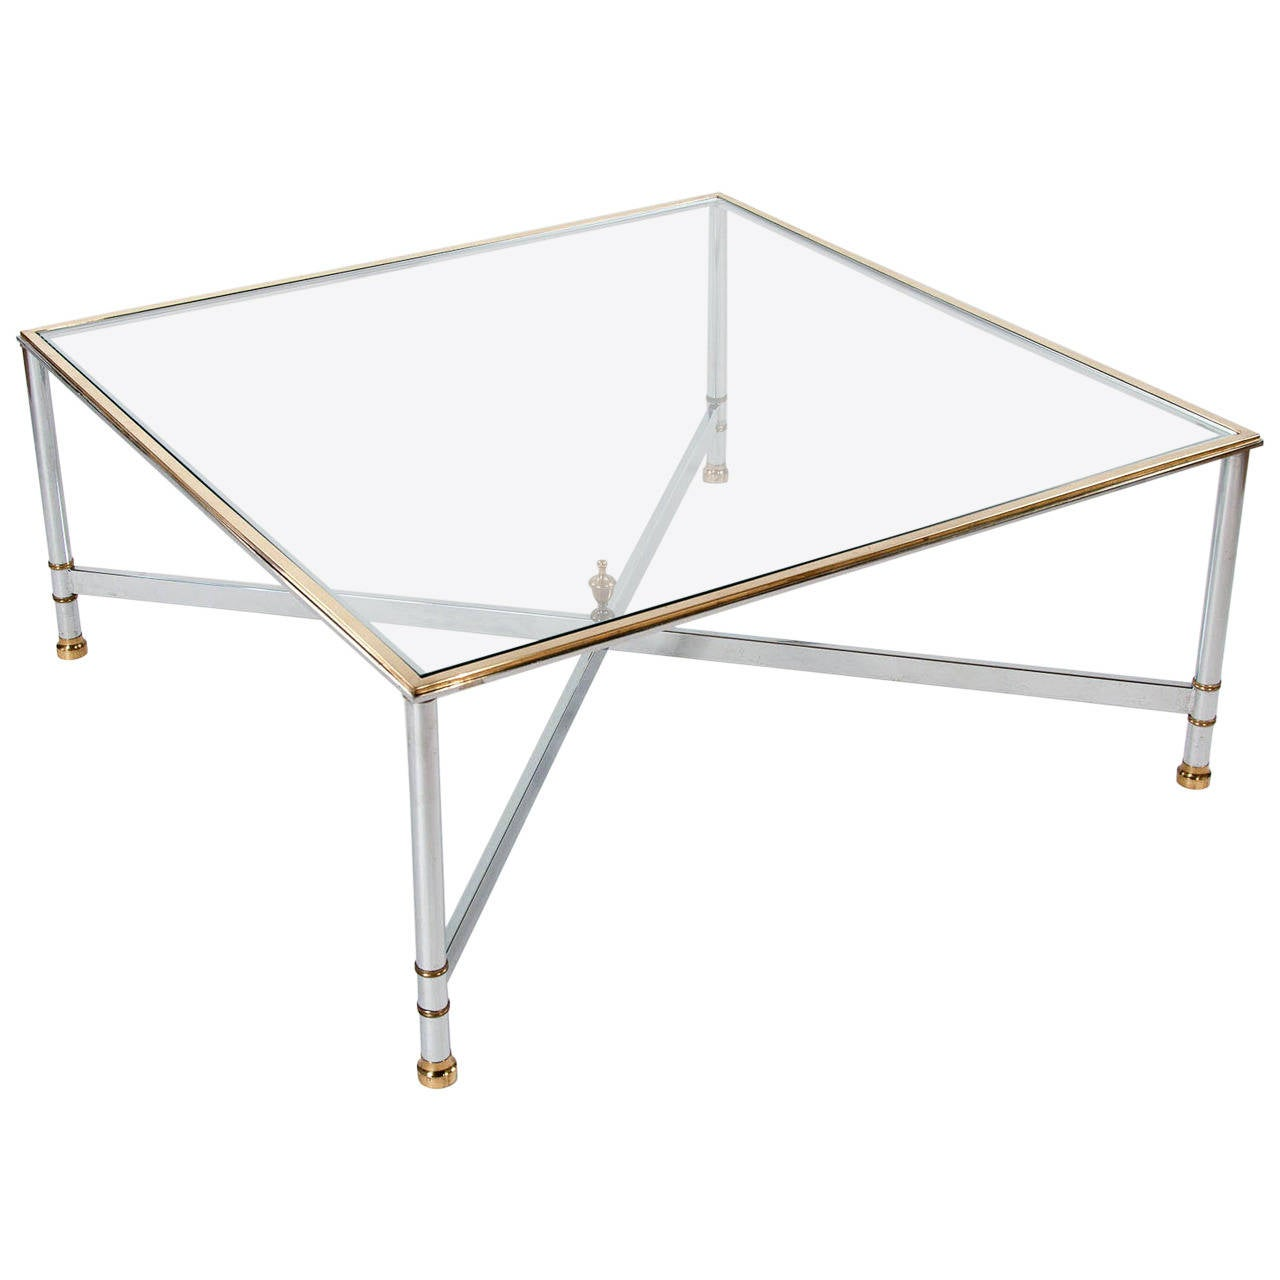 1970s large square glass coffee table at 1stdibs Large glass coffee table